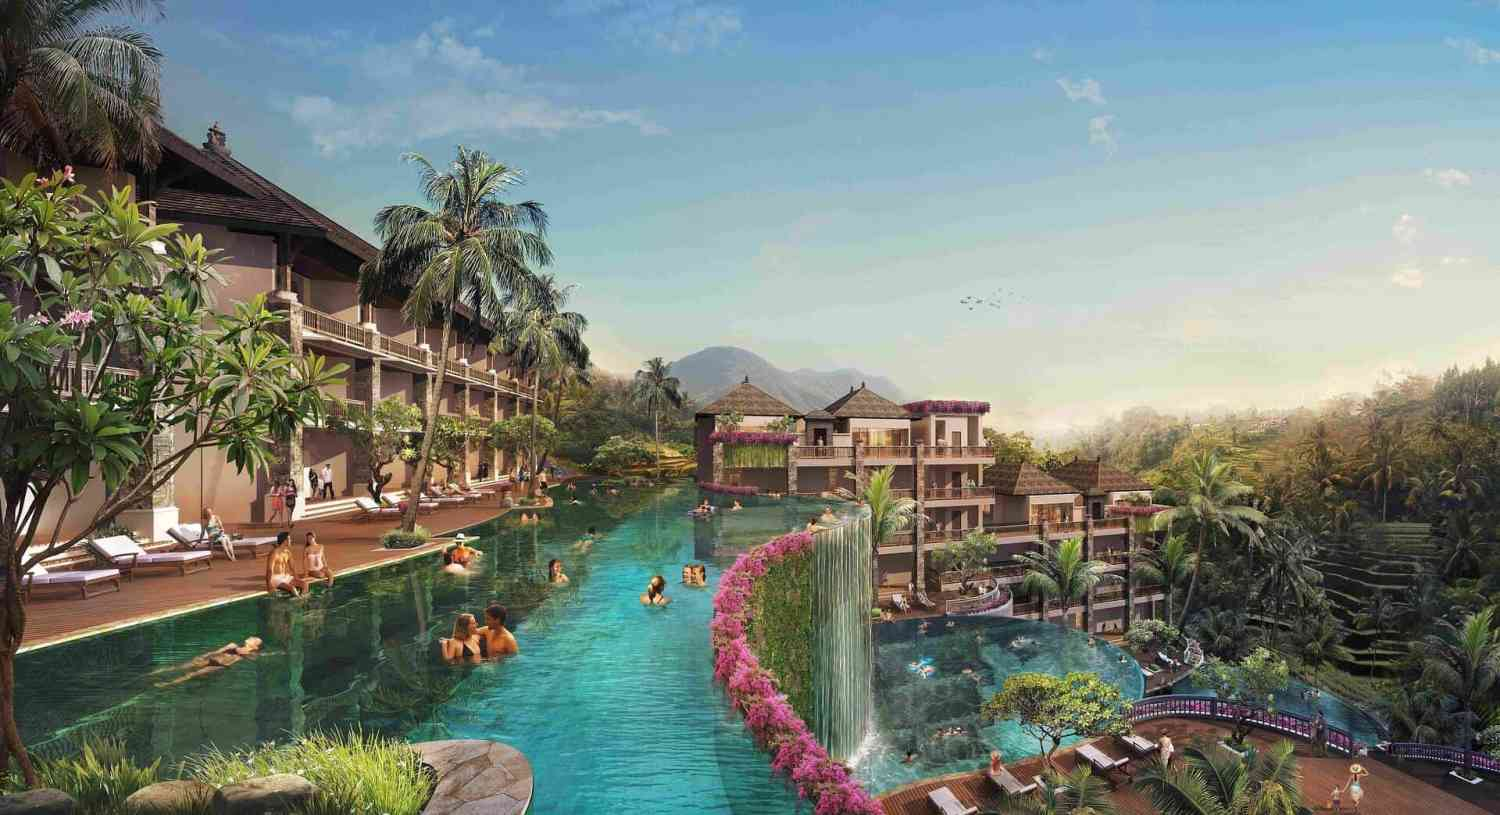 Bali- TOP 45 DESTINATIONS TO VISIT IN 2019 FOR INDIANS